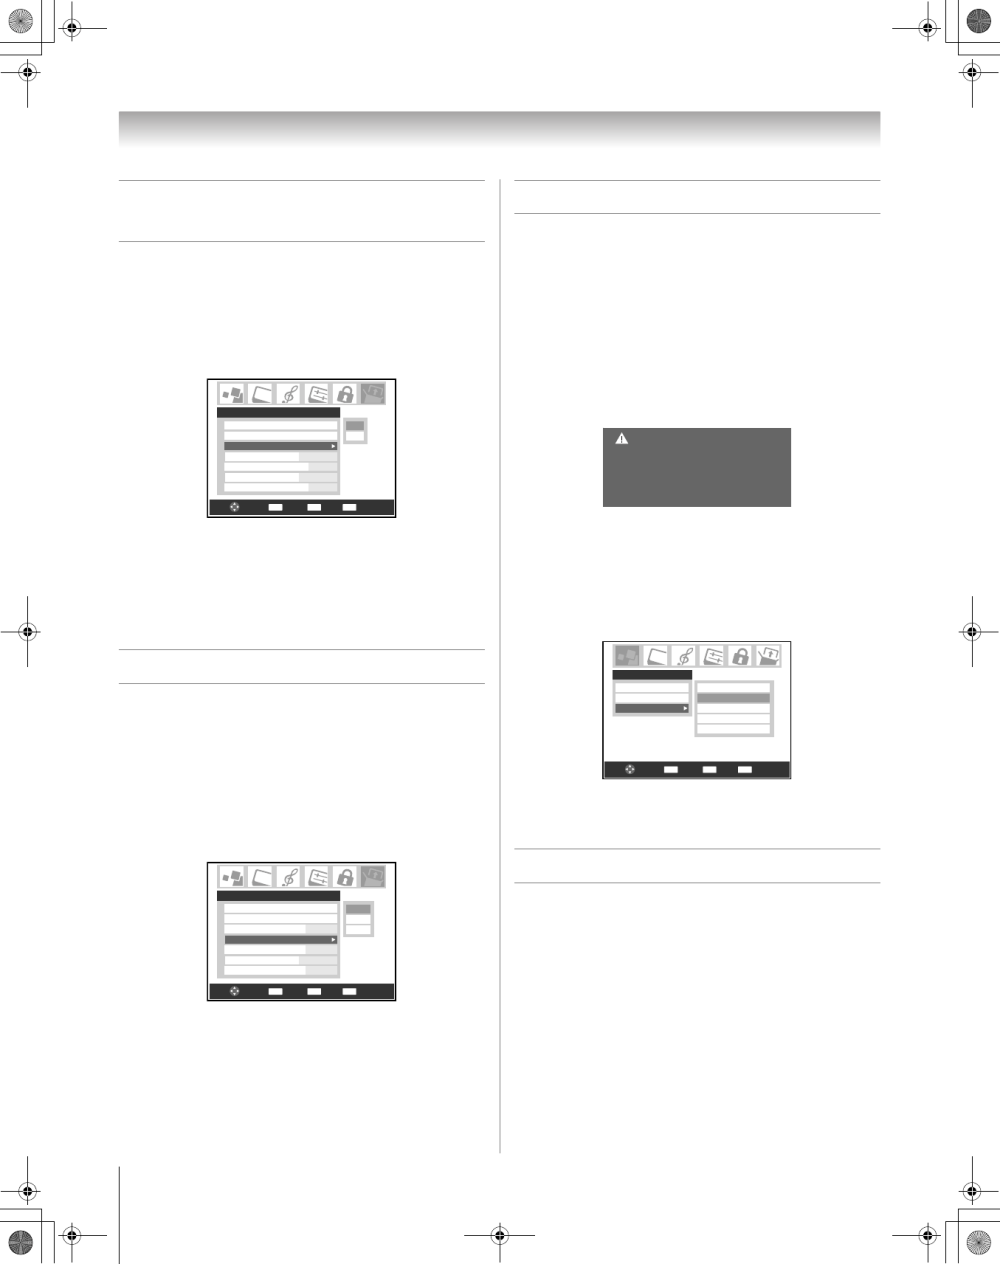 medium resolution of toshiba wiring diagrams 50hm66 television best wiring librarypage 20 of toshiba projection television 50hm66 user guide